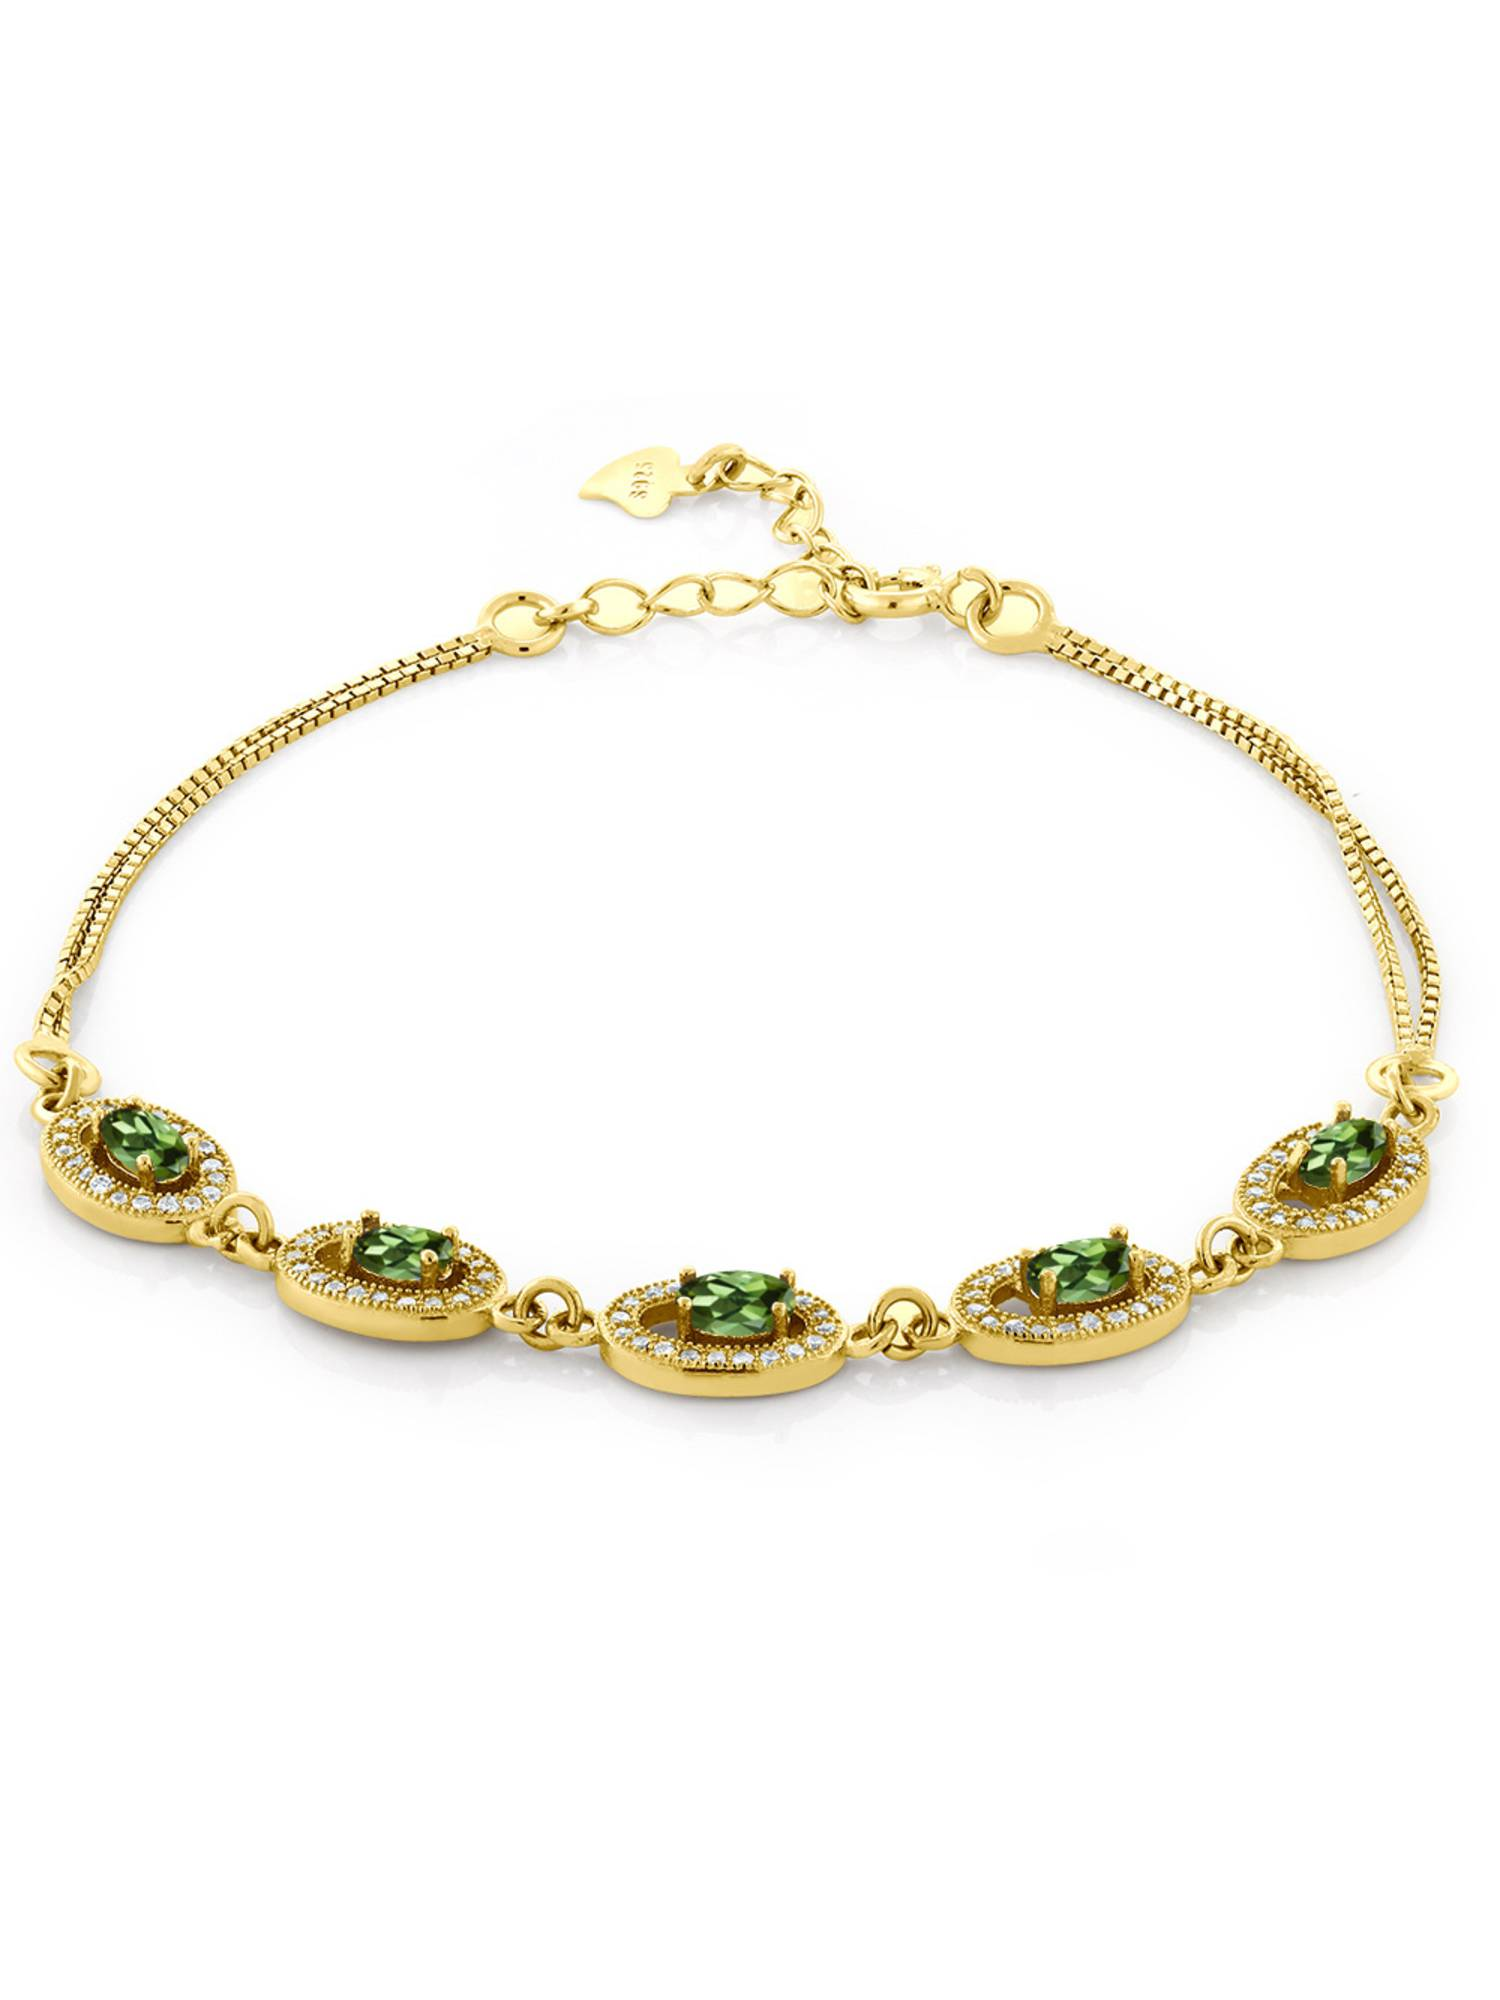 0.48 Ct Oval Green Tourmaline 18K Yellow Gold Plated Silver Bracelet by